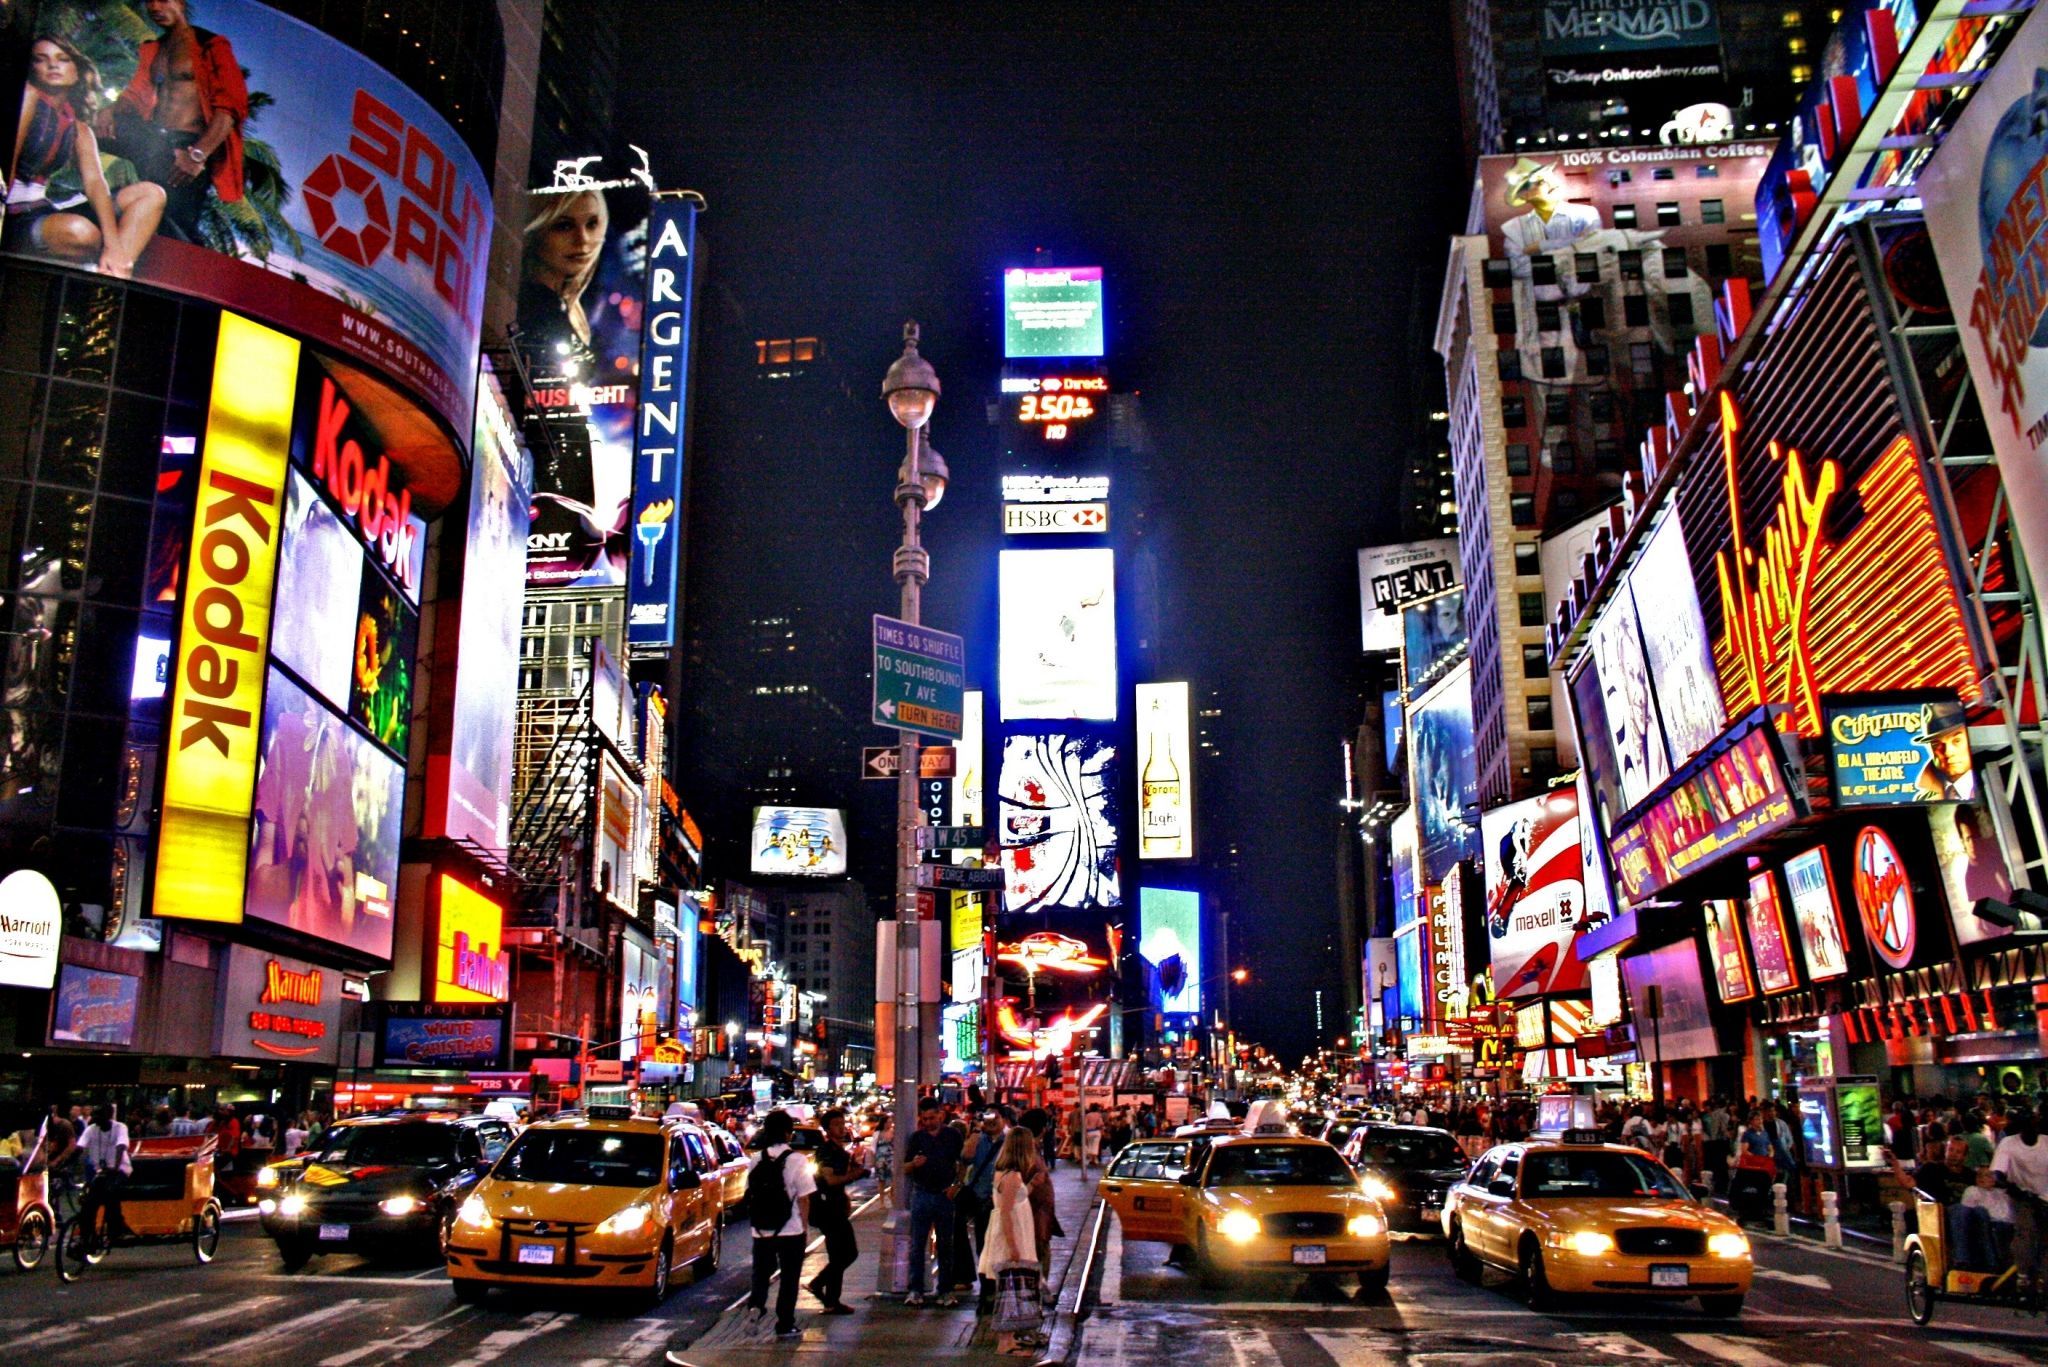 New York Desktop Wallpaper Hd Wallpapers New York Attractions New York City Travel Times Square